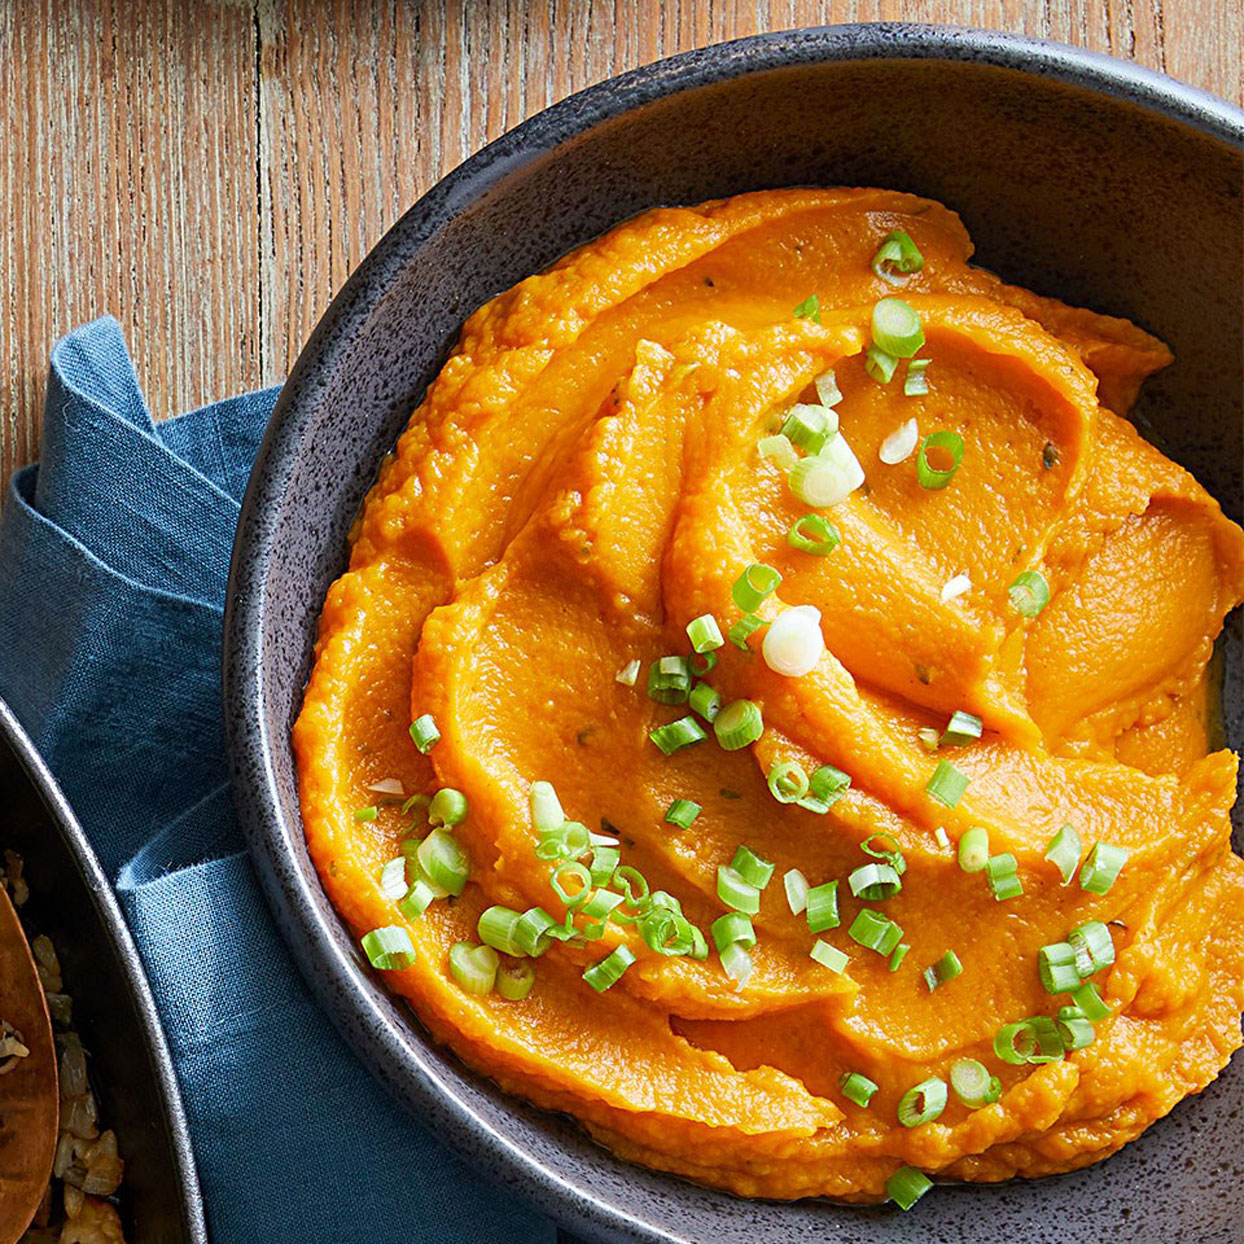 This colorful twist on traditional mashed potatoes swaps in sweet potatoes and incorporates the flavors of smoked paprika, cayenne, and orange zest. You can use regular paprika instead of smoked, and can omit the cayenne for a less spicy version.